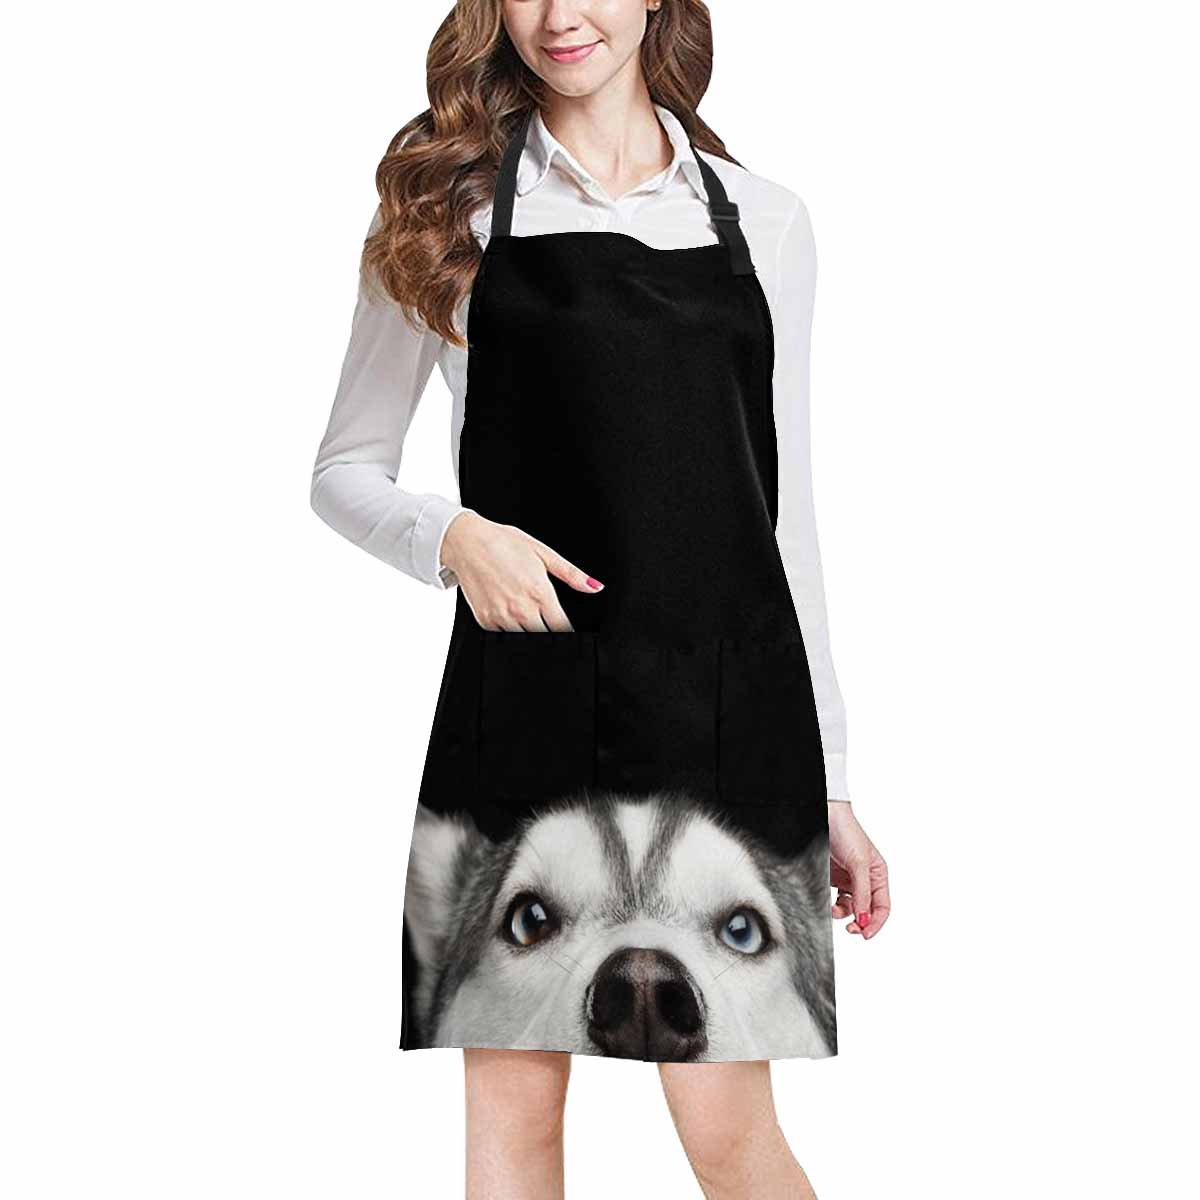 InterestPrint Hipster Funny Close Up Head Of Siberian Husky Dog With Blue Eyes Unisex Adjustable Bib Apron with Pockets for Women Men Girls Chef for Cooking Baking Gardening Crafting, Large Size